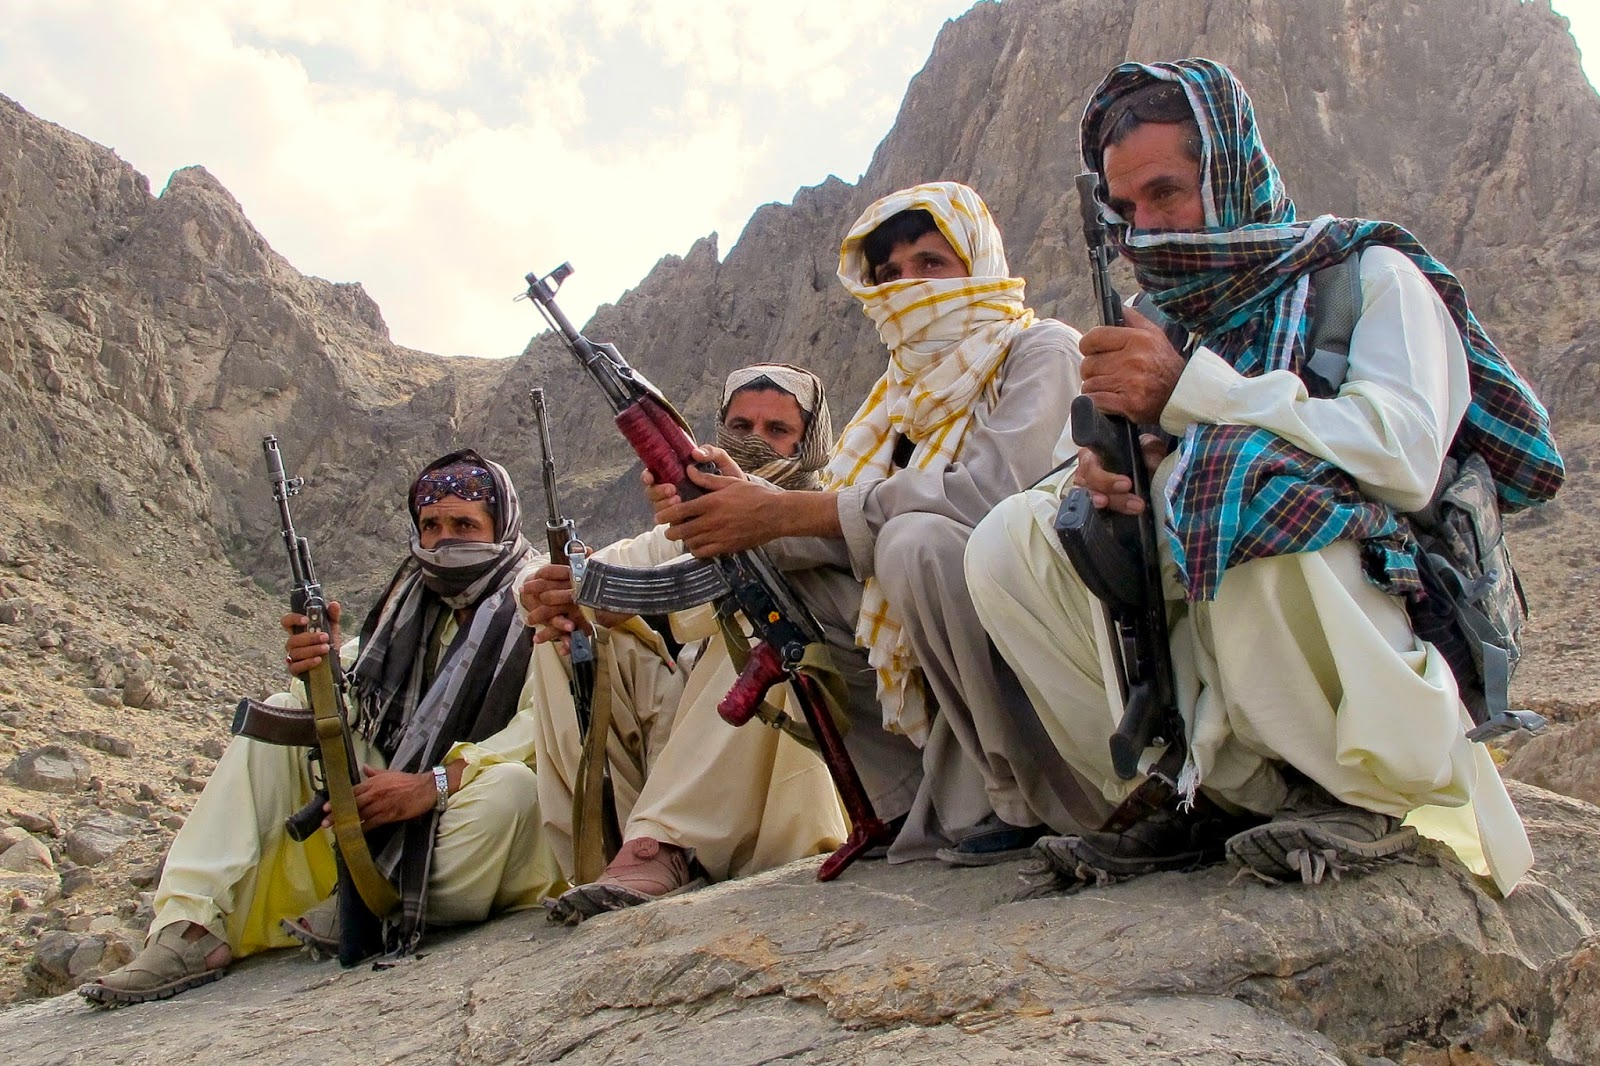 The Baloch insurgent groups in Pakistan are markedly secular and they share a common agenda focusing on the independence of Balochistan Karlos Zurutuza